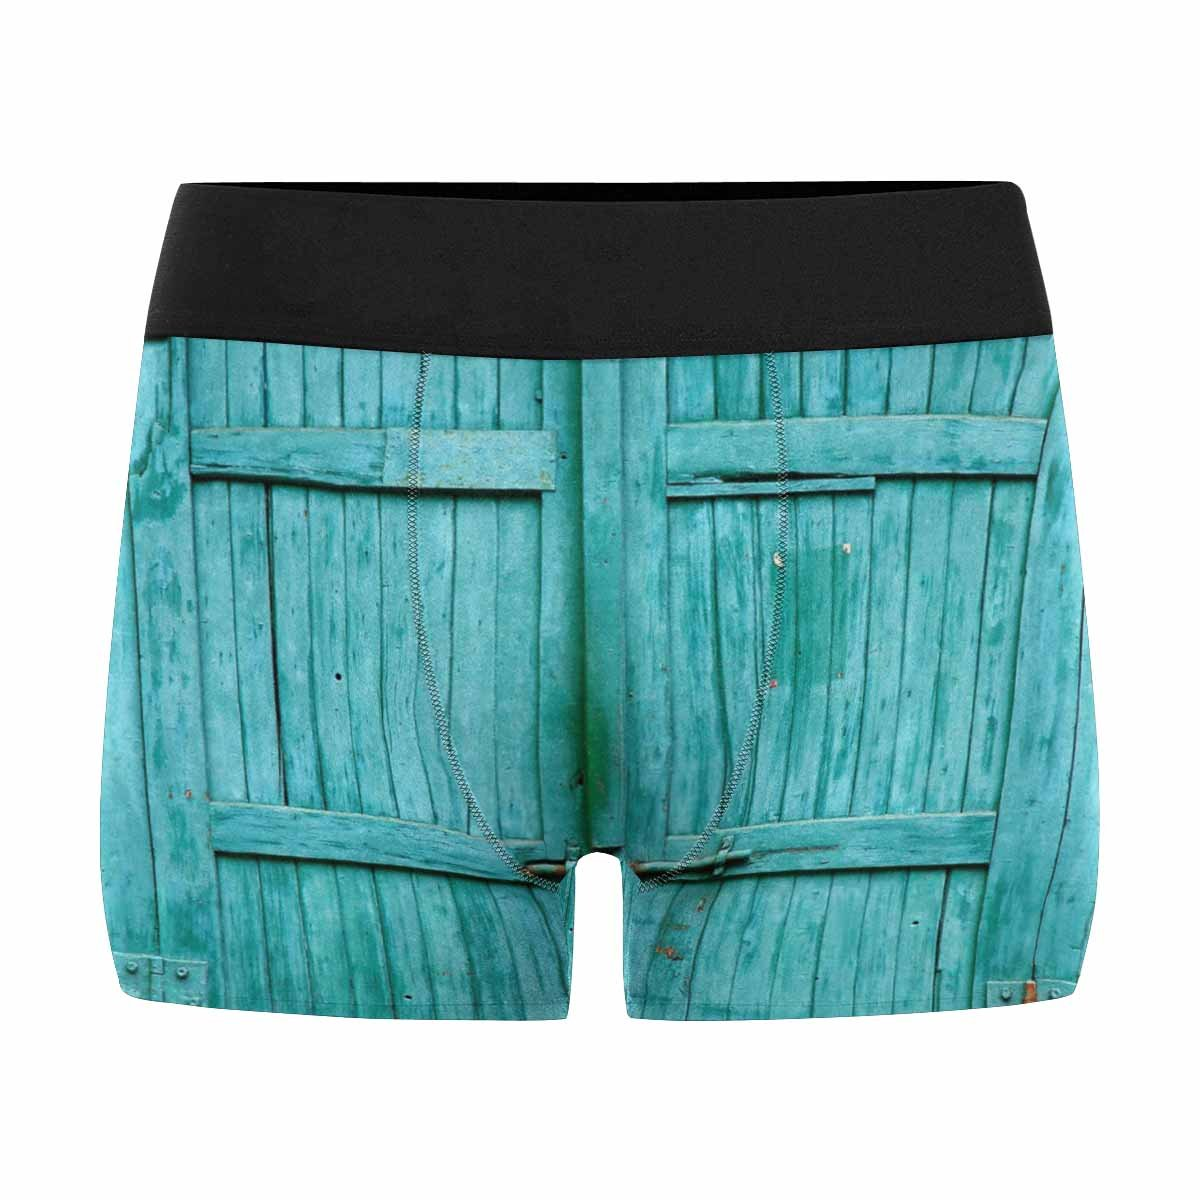 INTERESTPRINT Custom Mens All-Over Print Boxer Briefs Old Wooden Gate with Faded Paint XS-3XL